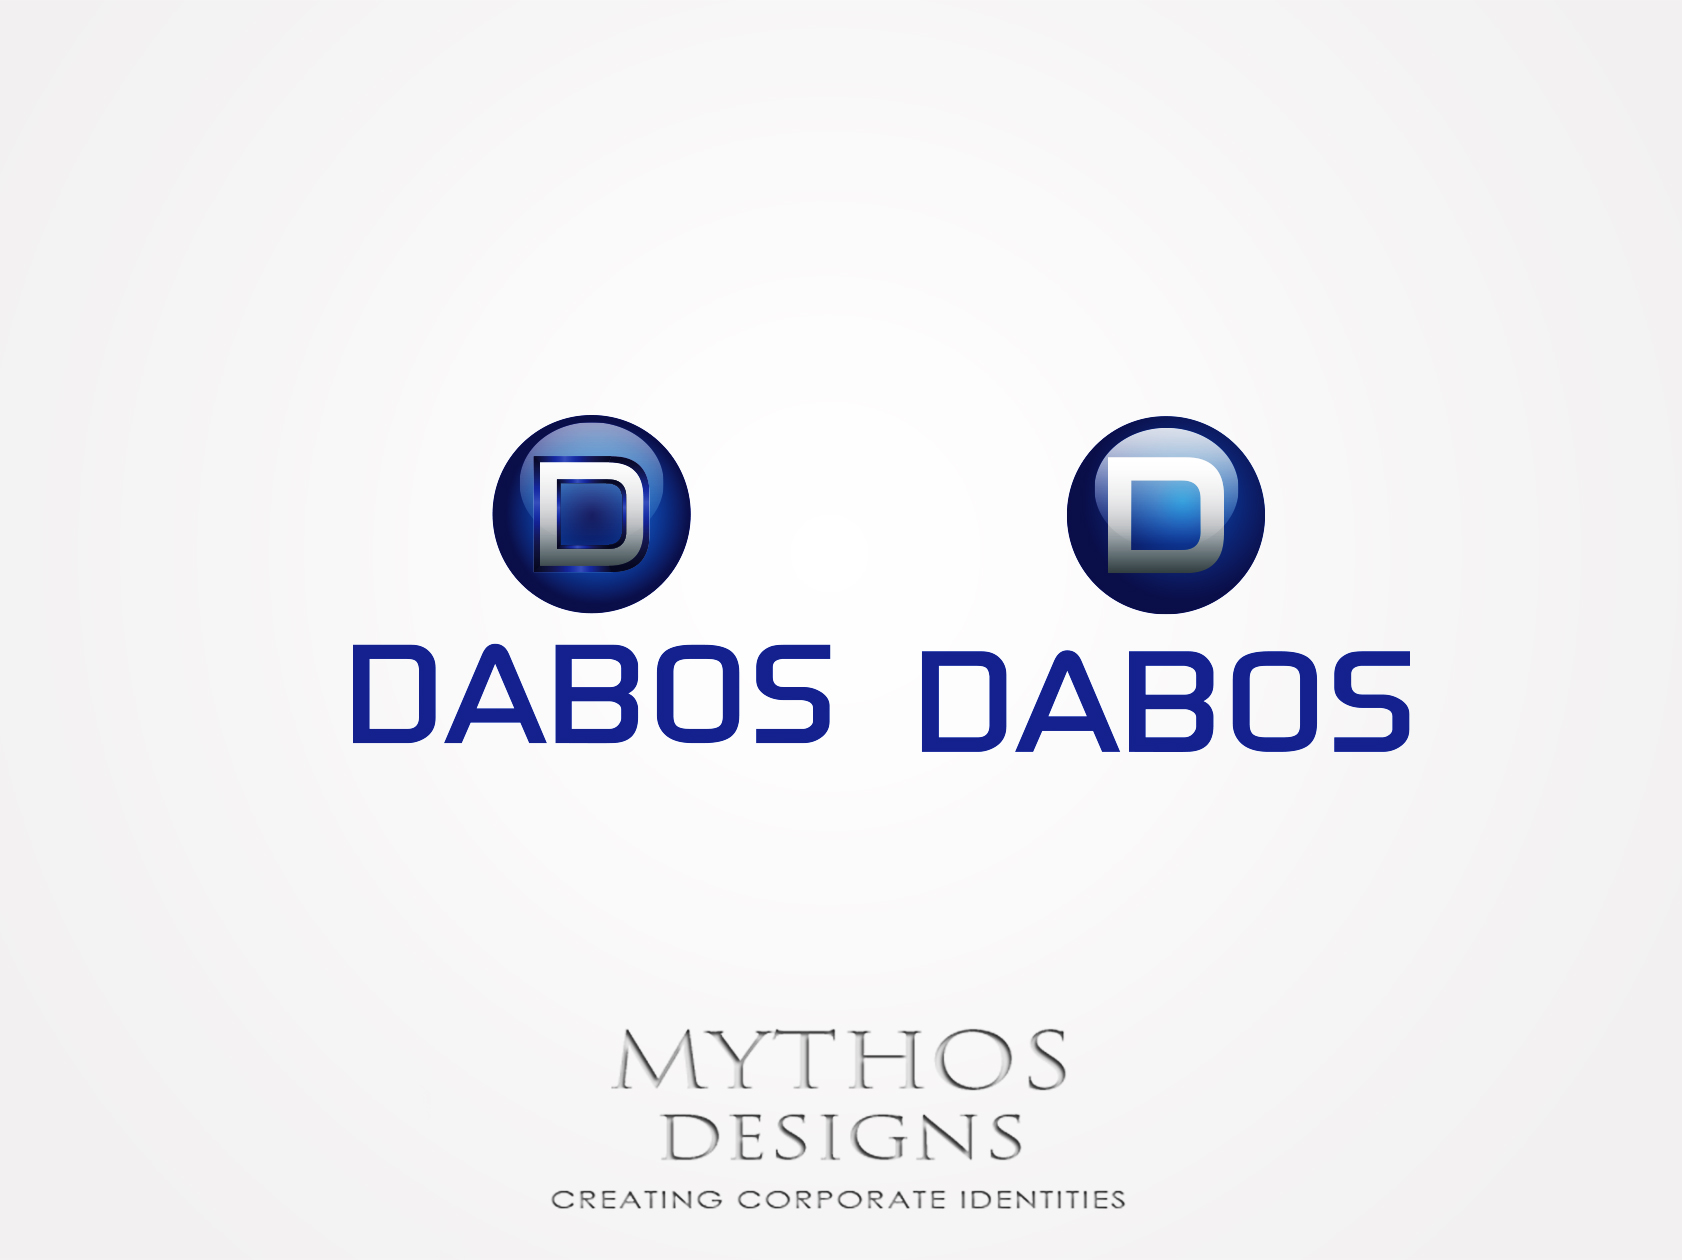 Logo Design by Mythos Designs - Entry No. 161 in the Logo Design Contest Imaginative Logo Design for DABOS, Limited Liability Company.